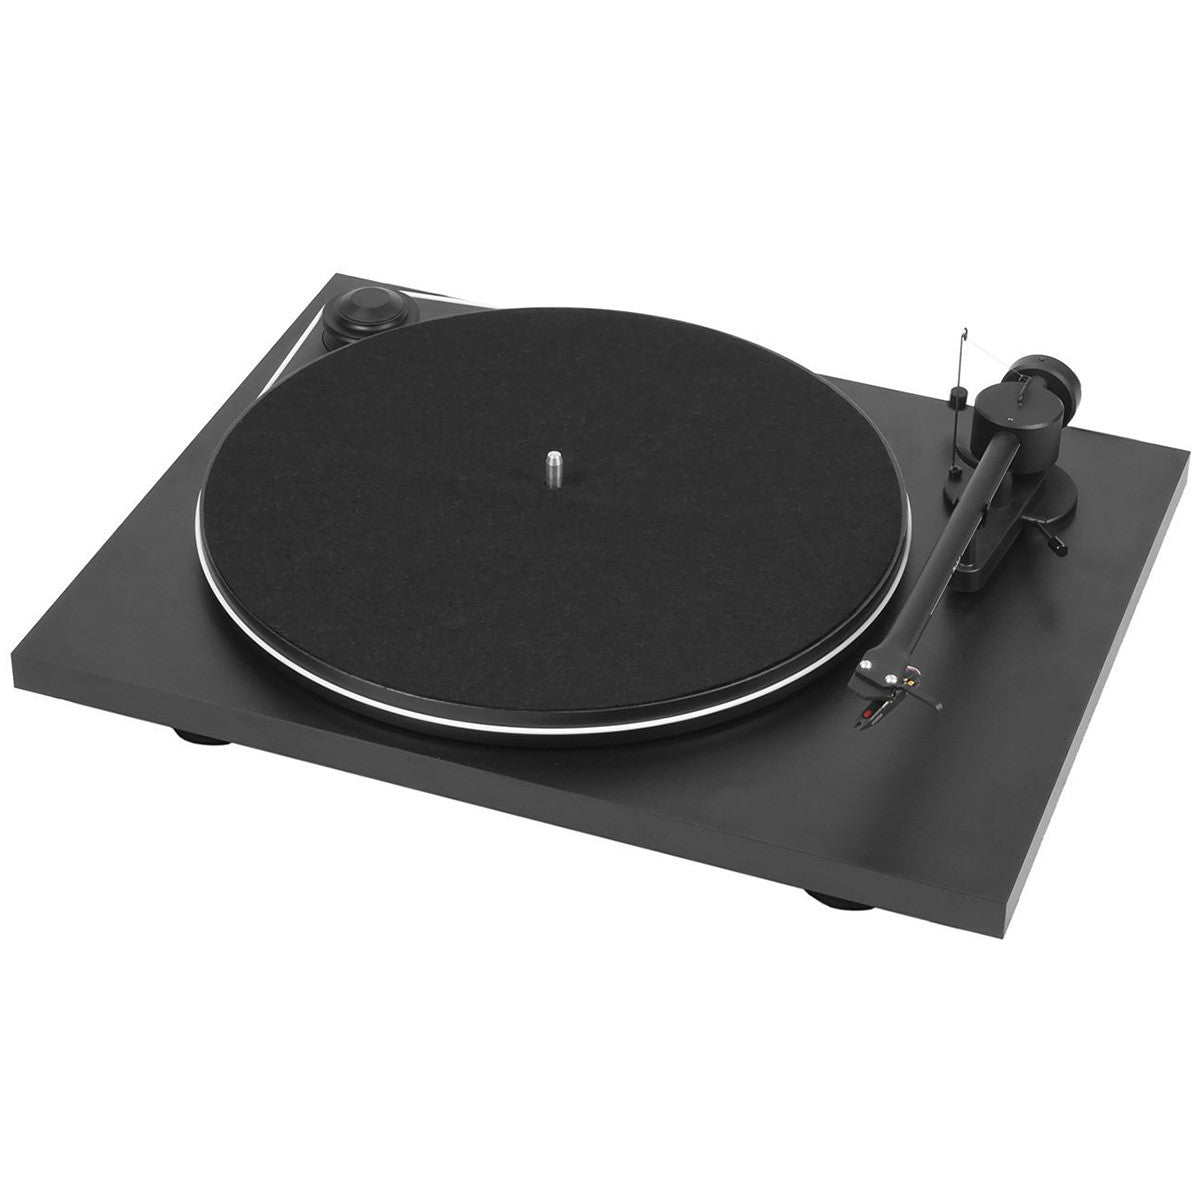 Pro-Ject: Essential II USB Turntable - Matte Black